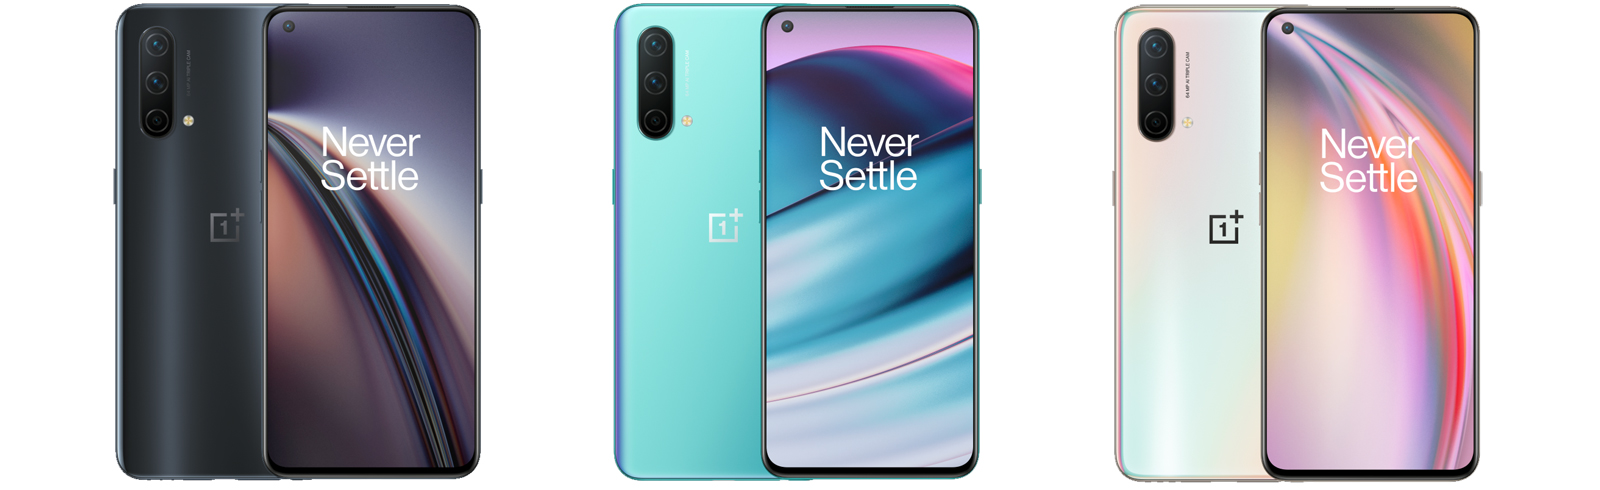 OnePlus Nord CE 5G is unveiled with Snapdragon 750G and a 64MP main camera